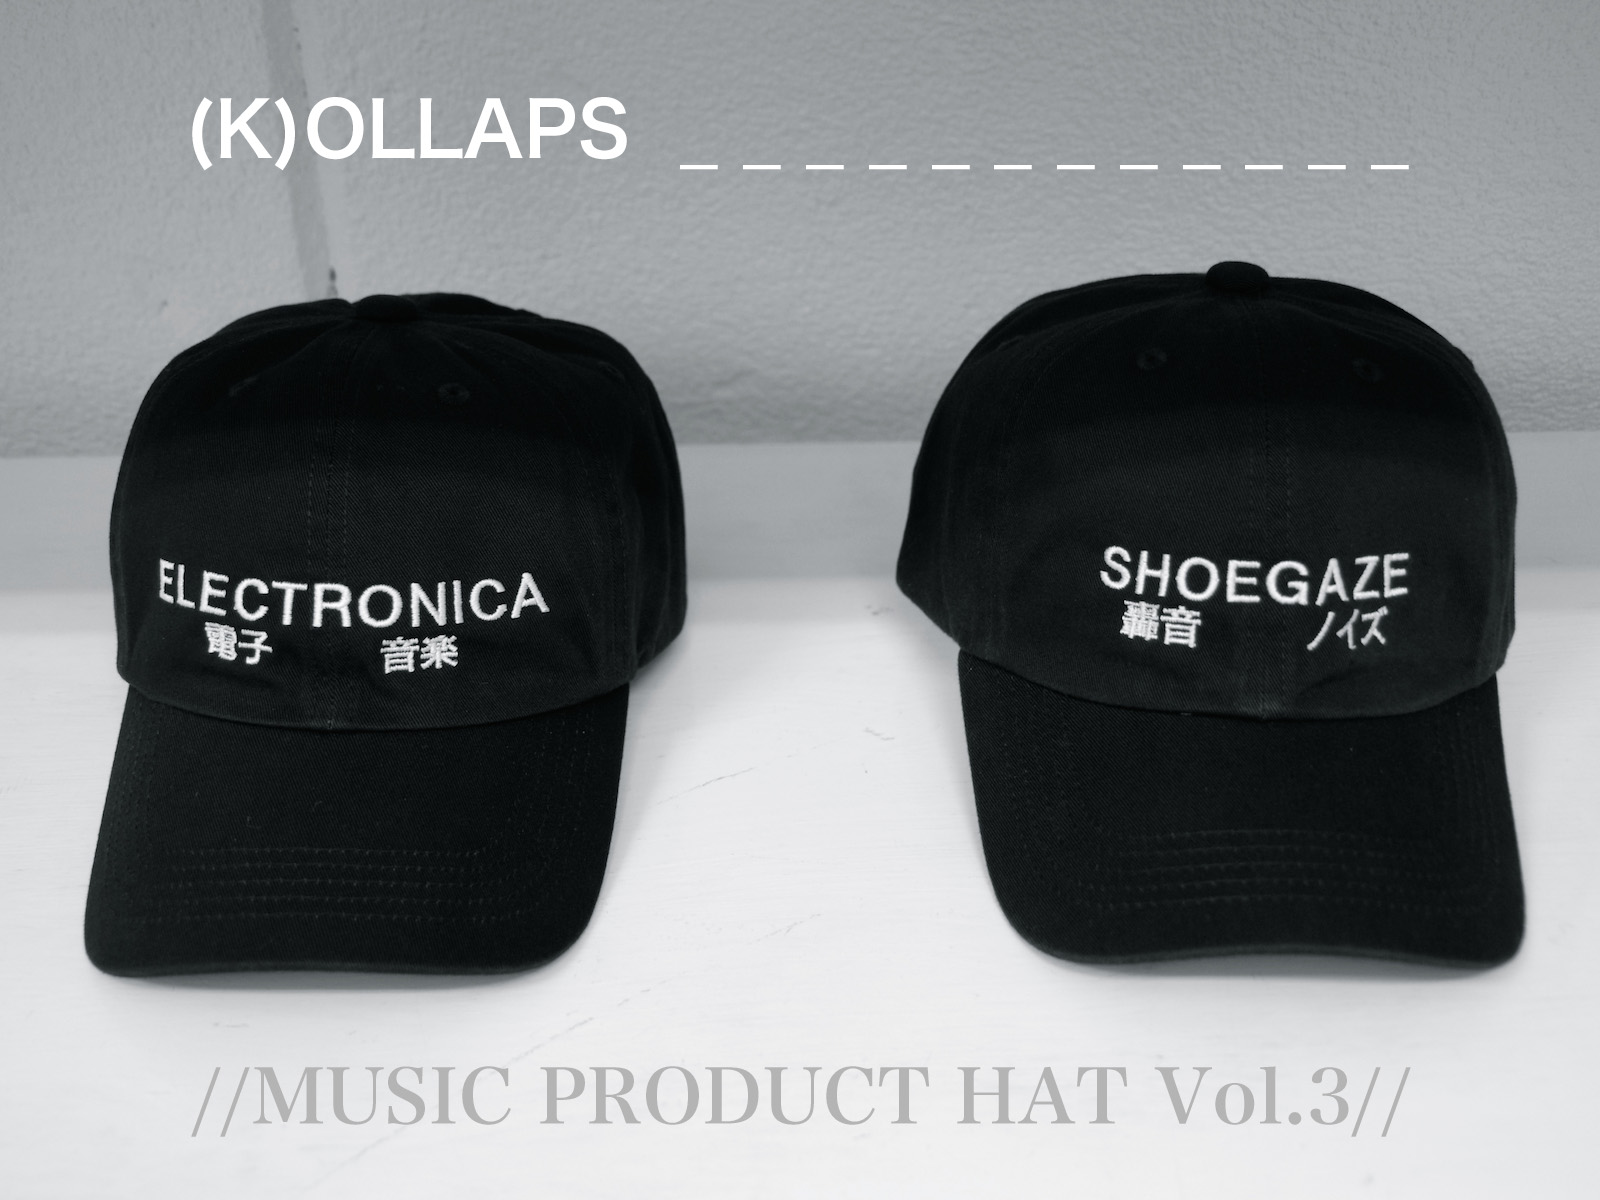 (K)OLLAPS MUSIC PRODUCT HAT Vol.3 販売開始